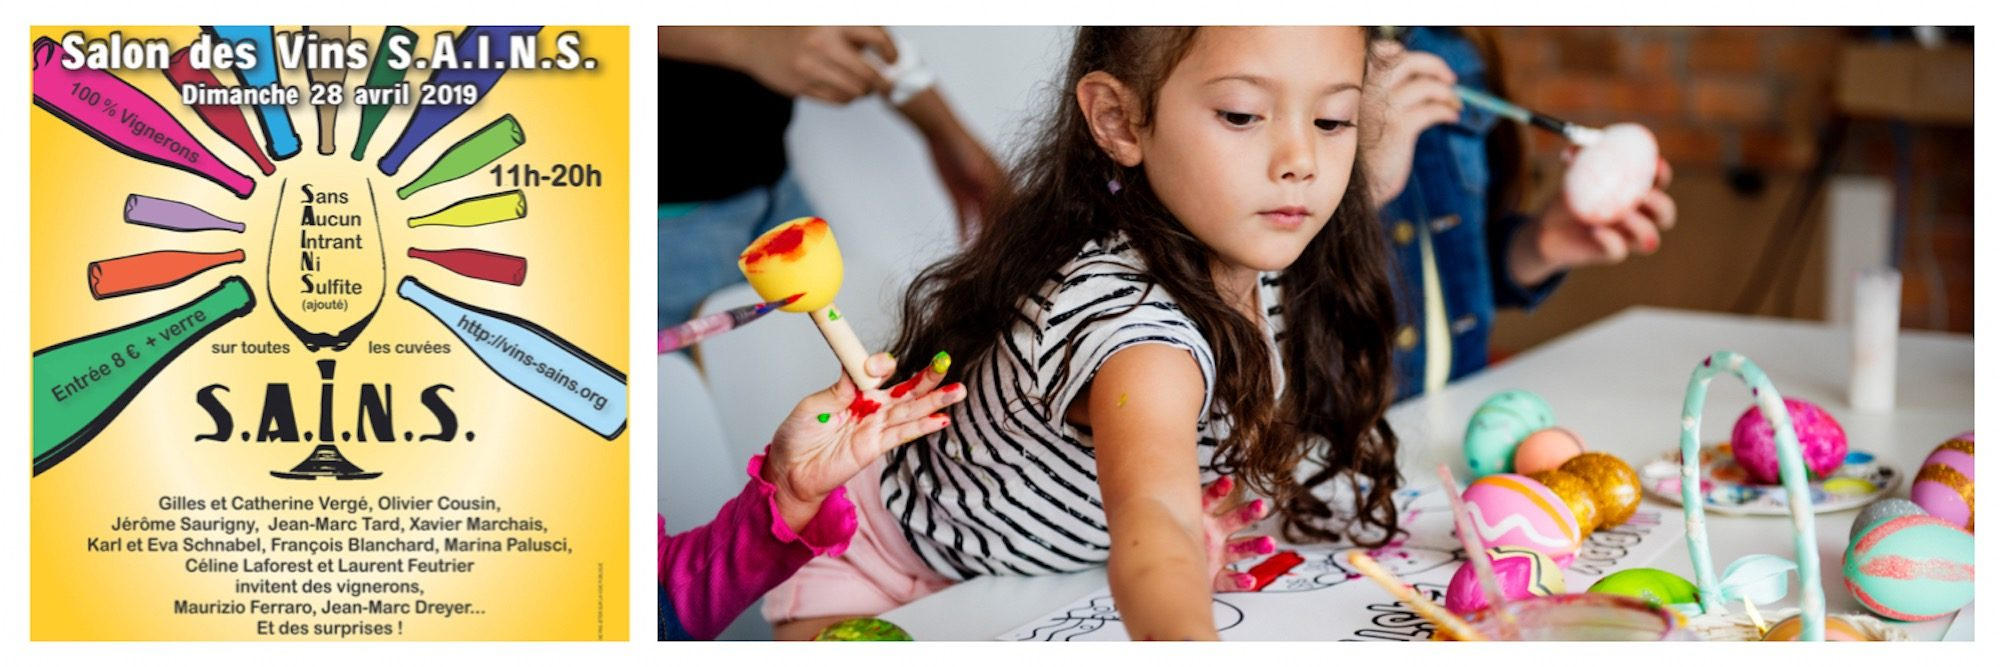 A poster for wine-tasting collective Les Vins S.A.I.N.S. in Paris this April (left). A little girl painting Easter eggs in Paris this April at one of the city's events for kids (right).